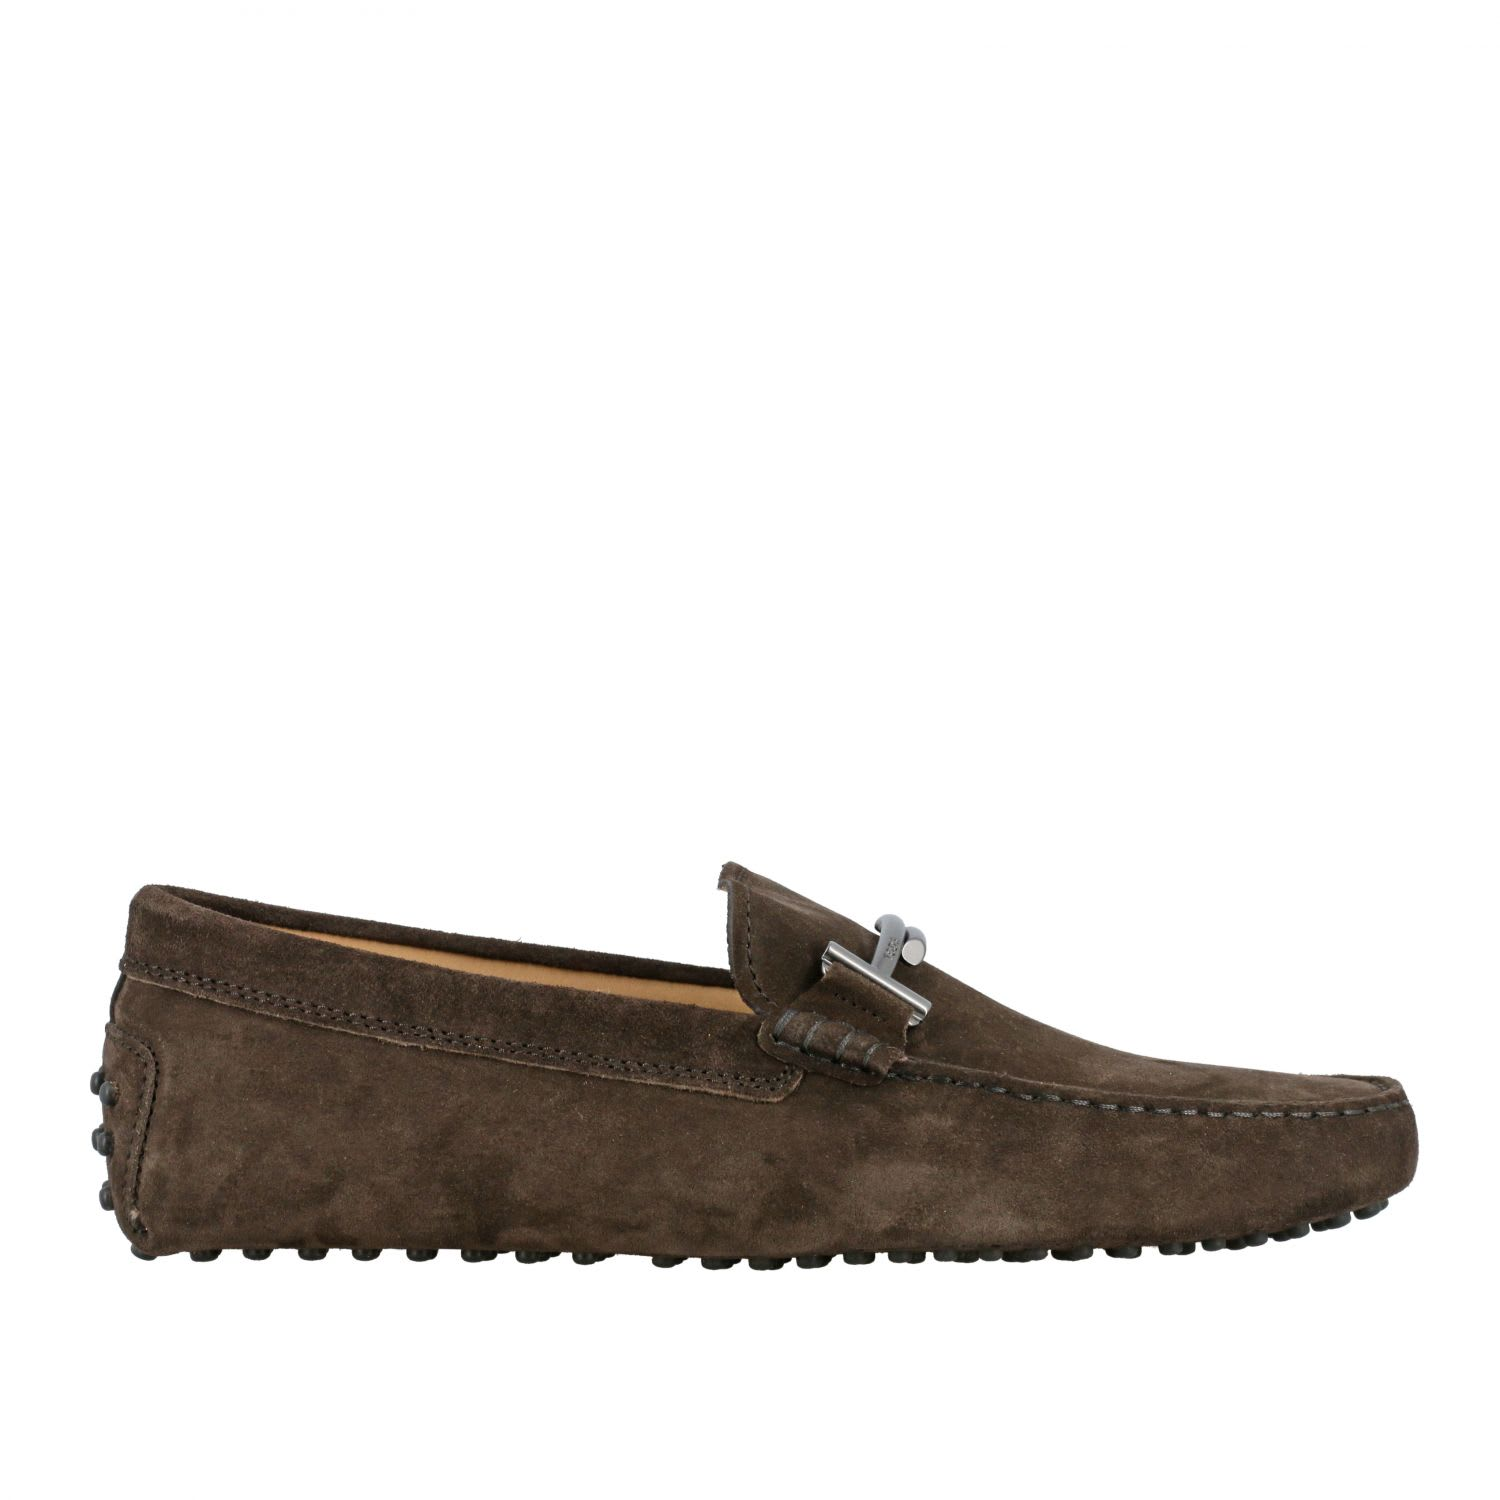 Tods Loafers Tods Gommini Loafer In Suede With Double T